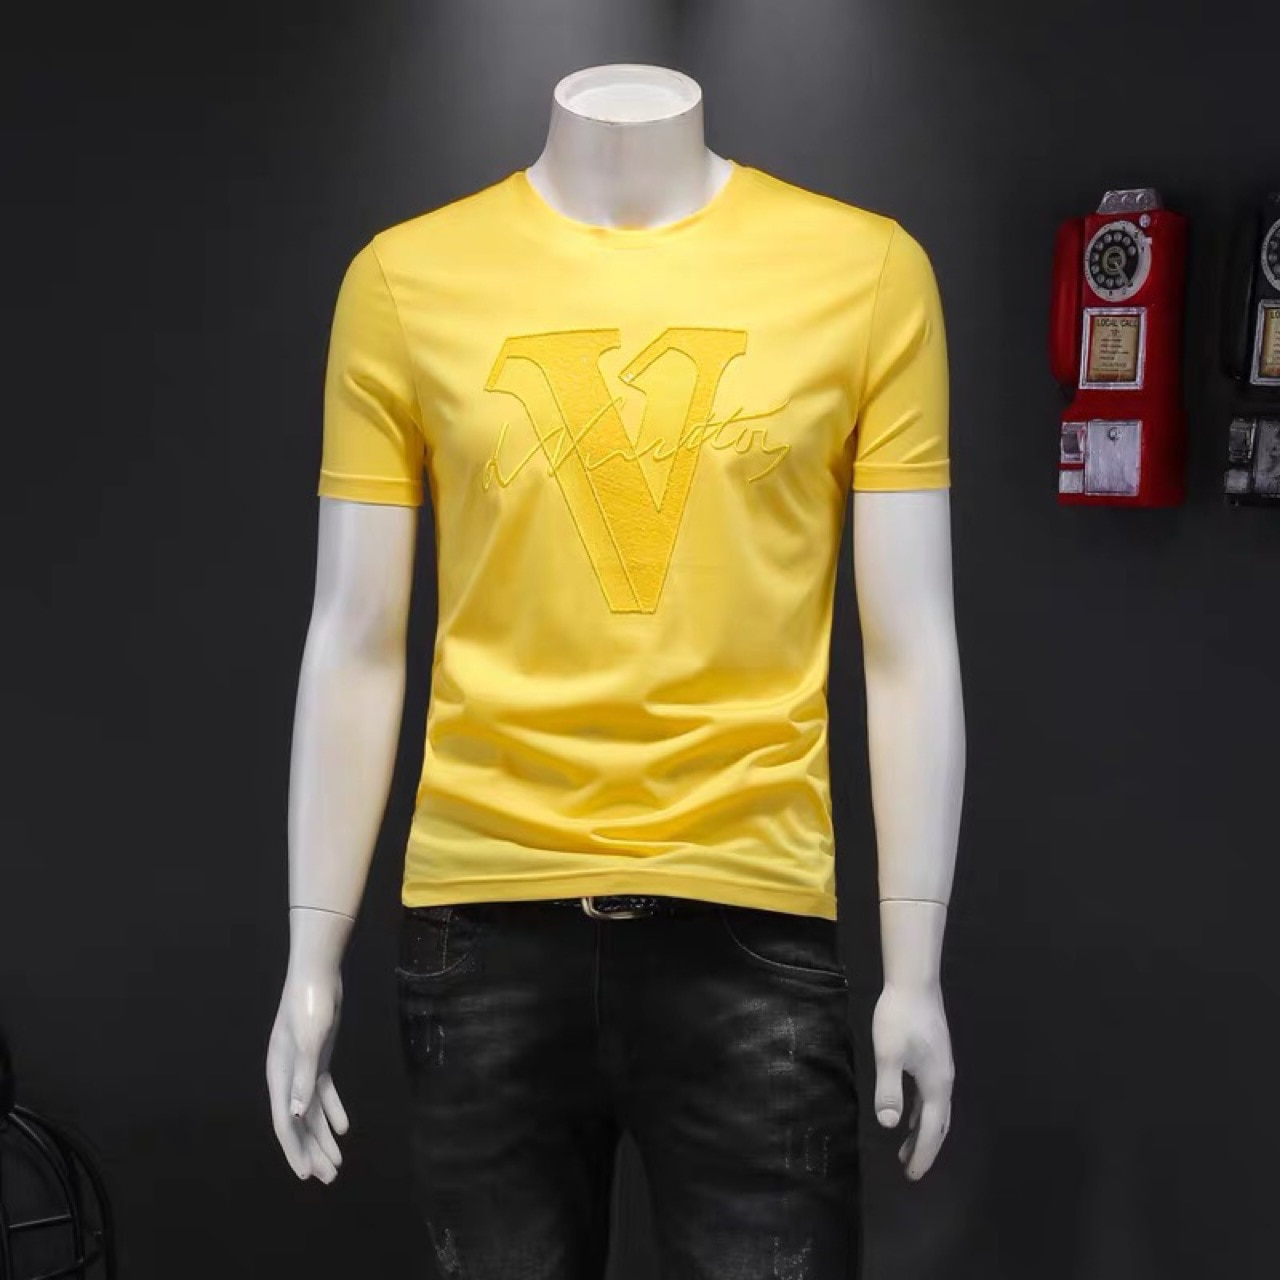 European Station 2021 Summer New Fashion Letters Embroidered Short-Sleeved T-shirt Slim Men's Bright Color Half-Sleeve Shirt